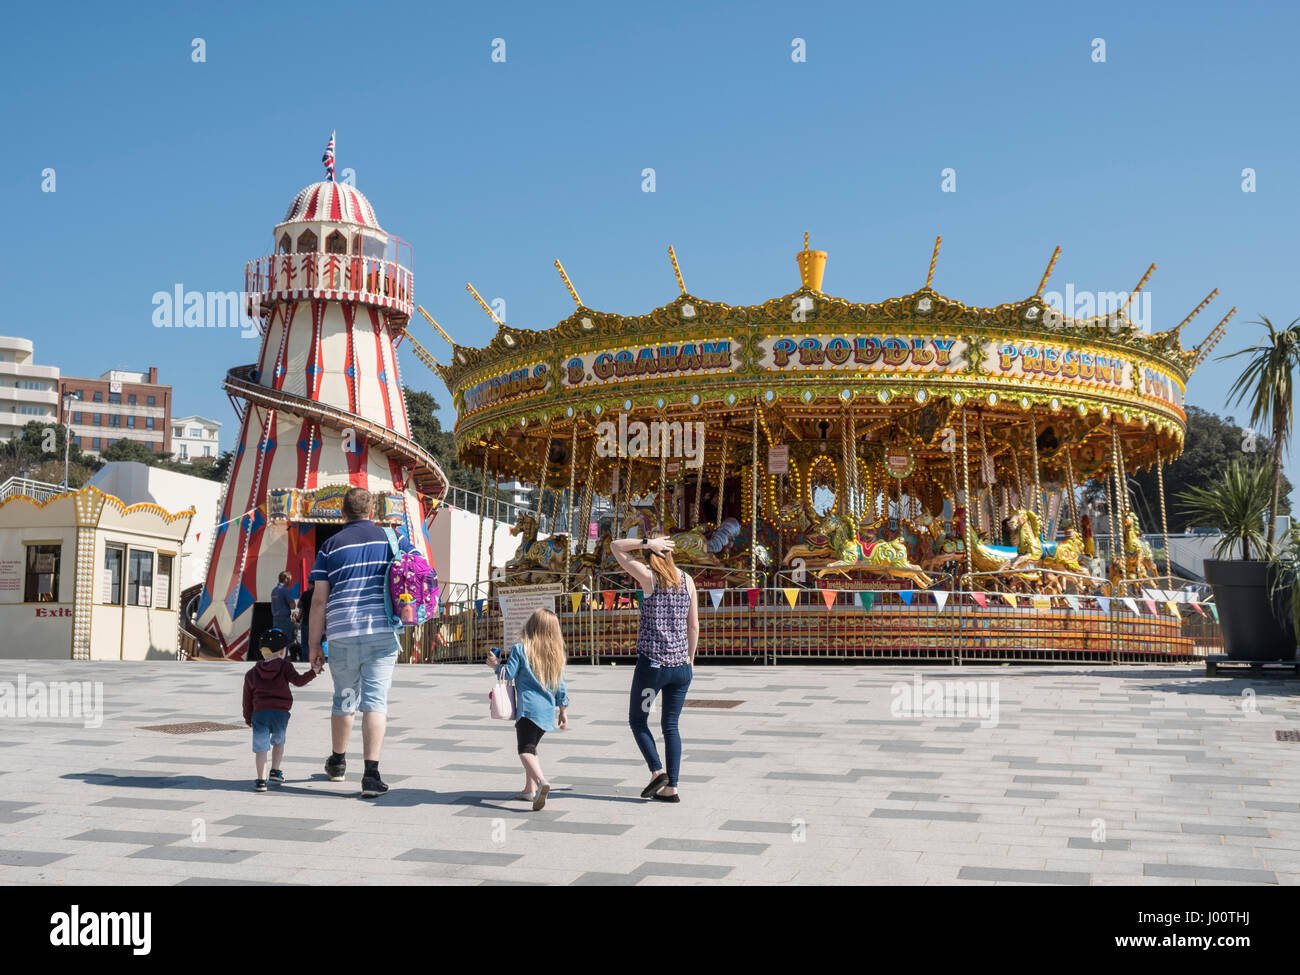 Merry-go-round or Carousel and Victorian Helter-skelter Spiral Slide for children in Bournemouth, Dorset, UK Stock Photo